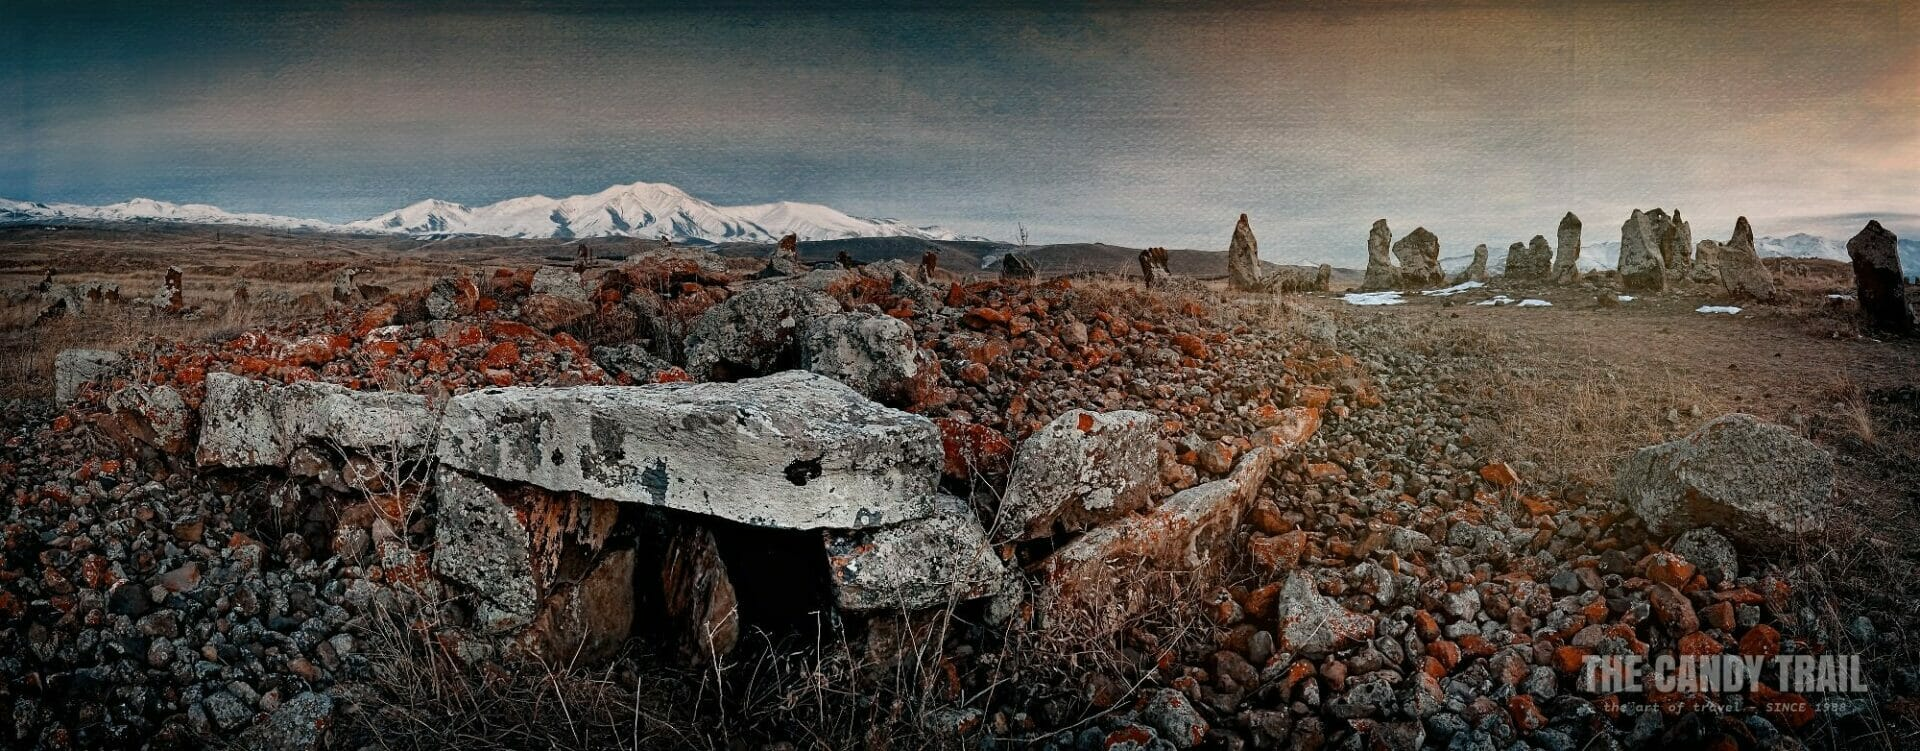 Zorats Karer Stone Circle Armenia Mountain Panorama